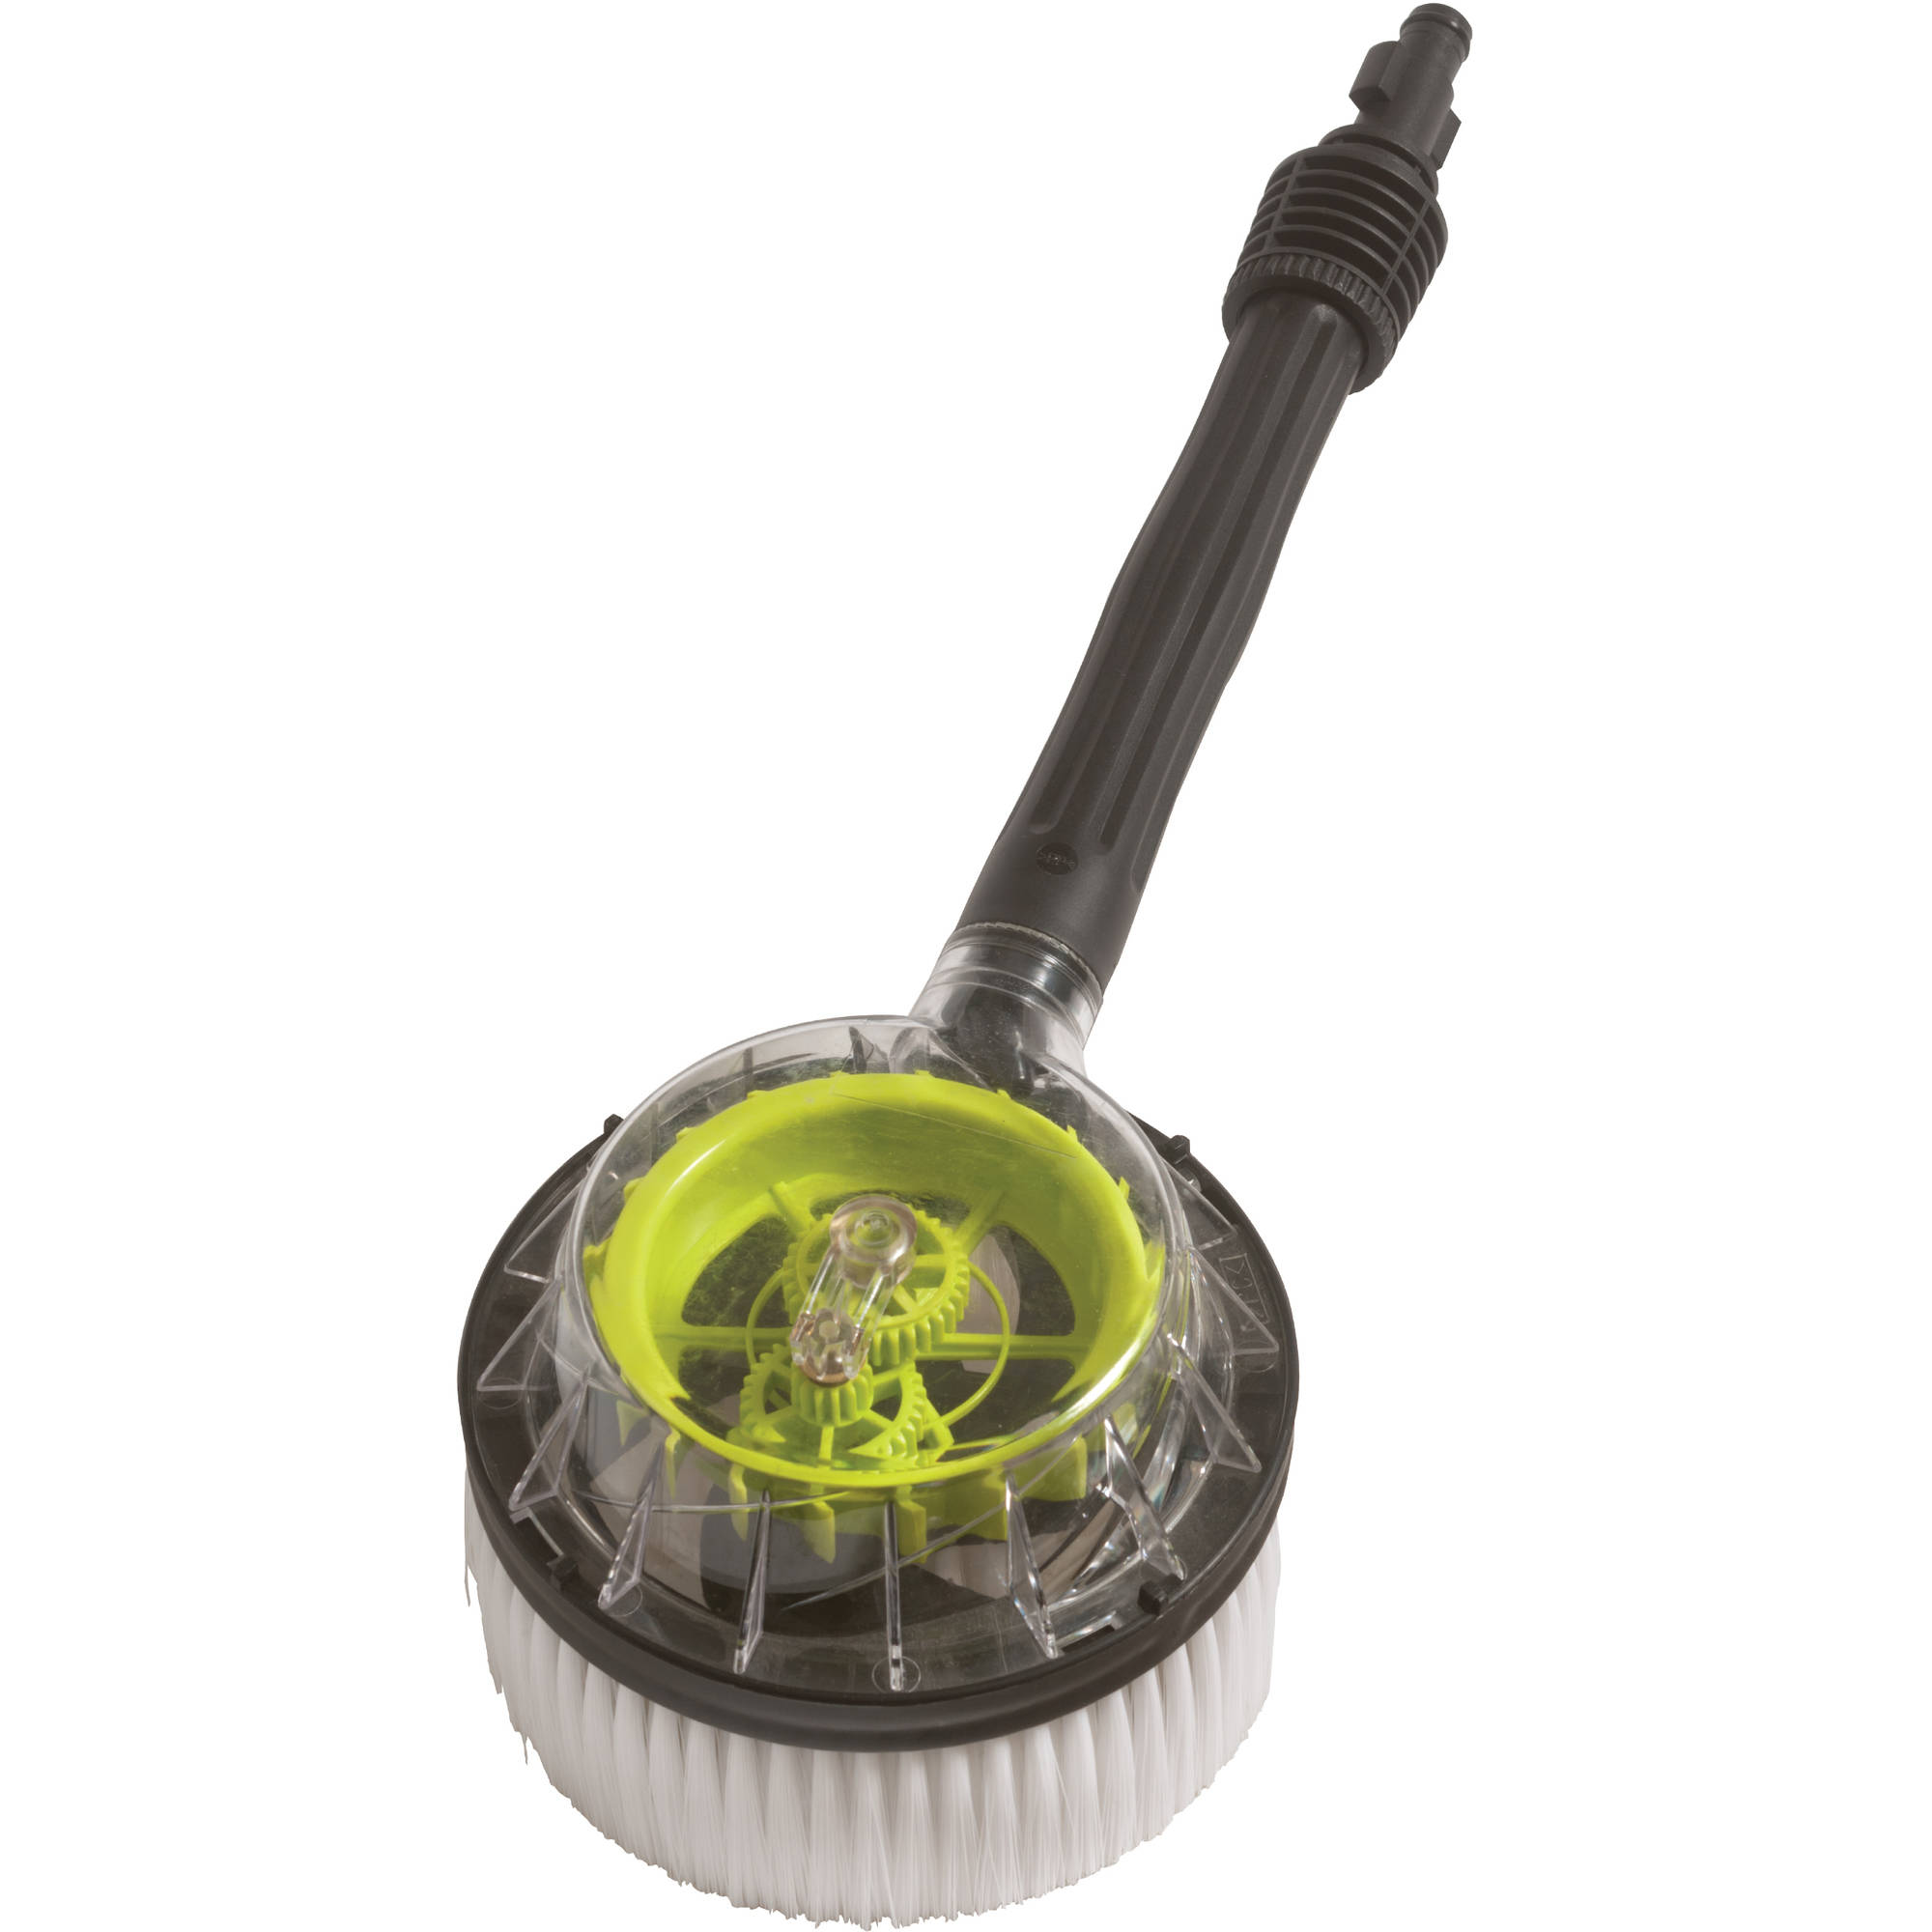 Sun Joe Rotary Wash Brush Kit (Sun Joe Electric Pressure Washers)